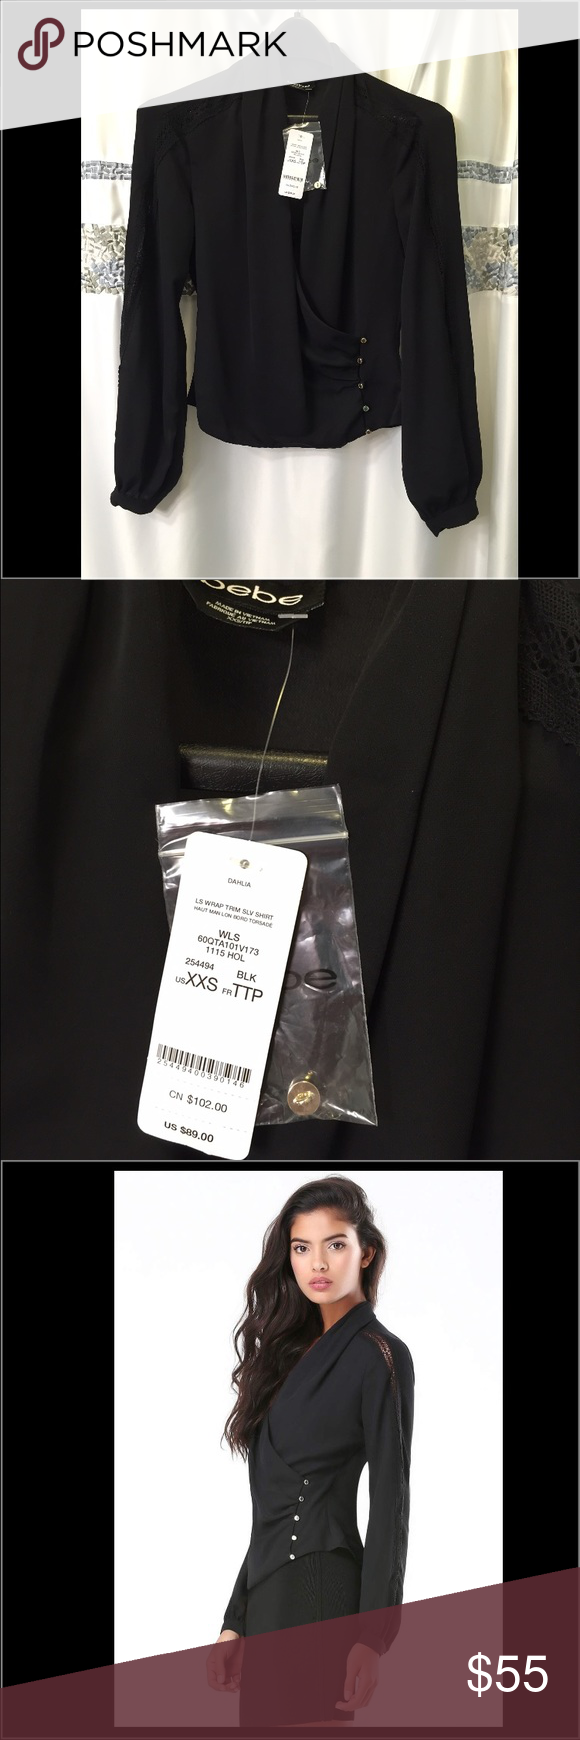 NWT $89 Bebe Lace Trim Wrap Blouse Black XXS XS 0 New With Tags! $89 Bebe Lace Trim Wrap Blouse Black XXS XS 0 Chiffon  Condition: New With Tags!  Authentic Brand: Bebe  Size: XXS (Will fit XS too)  Color: Black  ~  This elegant georgette blouse is flawless from graceful surplice bodice to button-cuff blouson sleeves.    ~  Neck-to-cuff crochet lace inset creates a refined handworked vibe.    ~  Inside tie closure.    ~  Front button-loop closures.  ~  100% Polyester (Polyester Chiffon)…